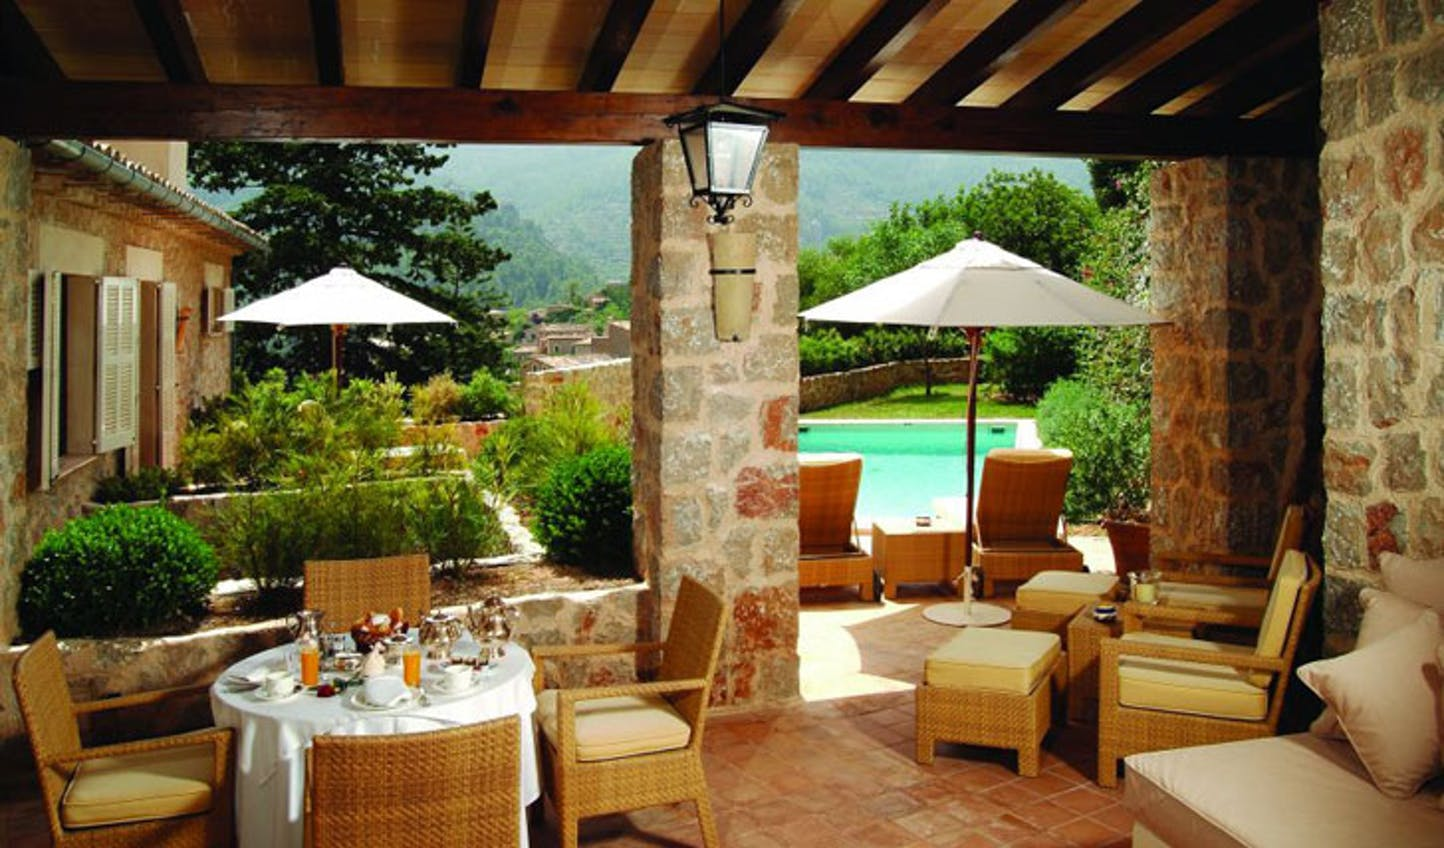 Luxury hotel suite pool at La Residencia, Mallorca, Spain